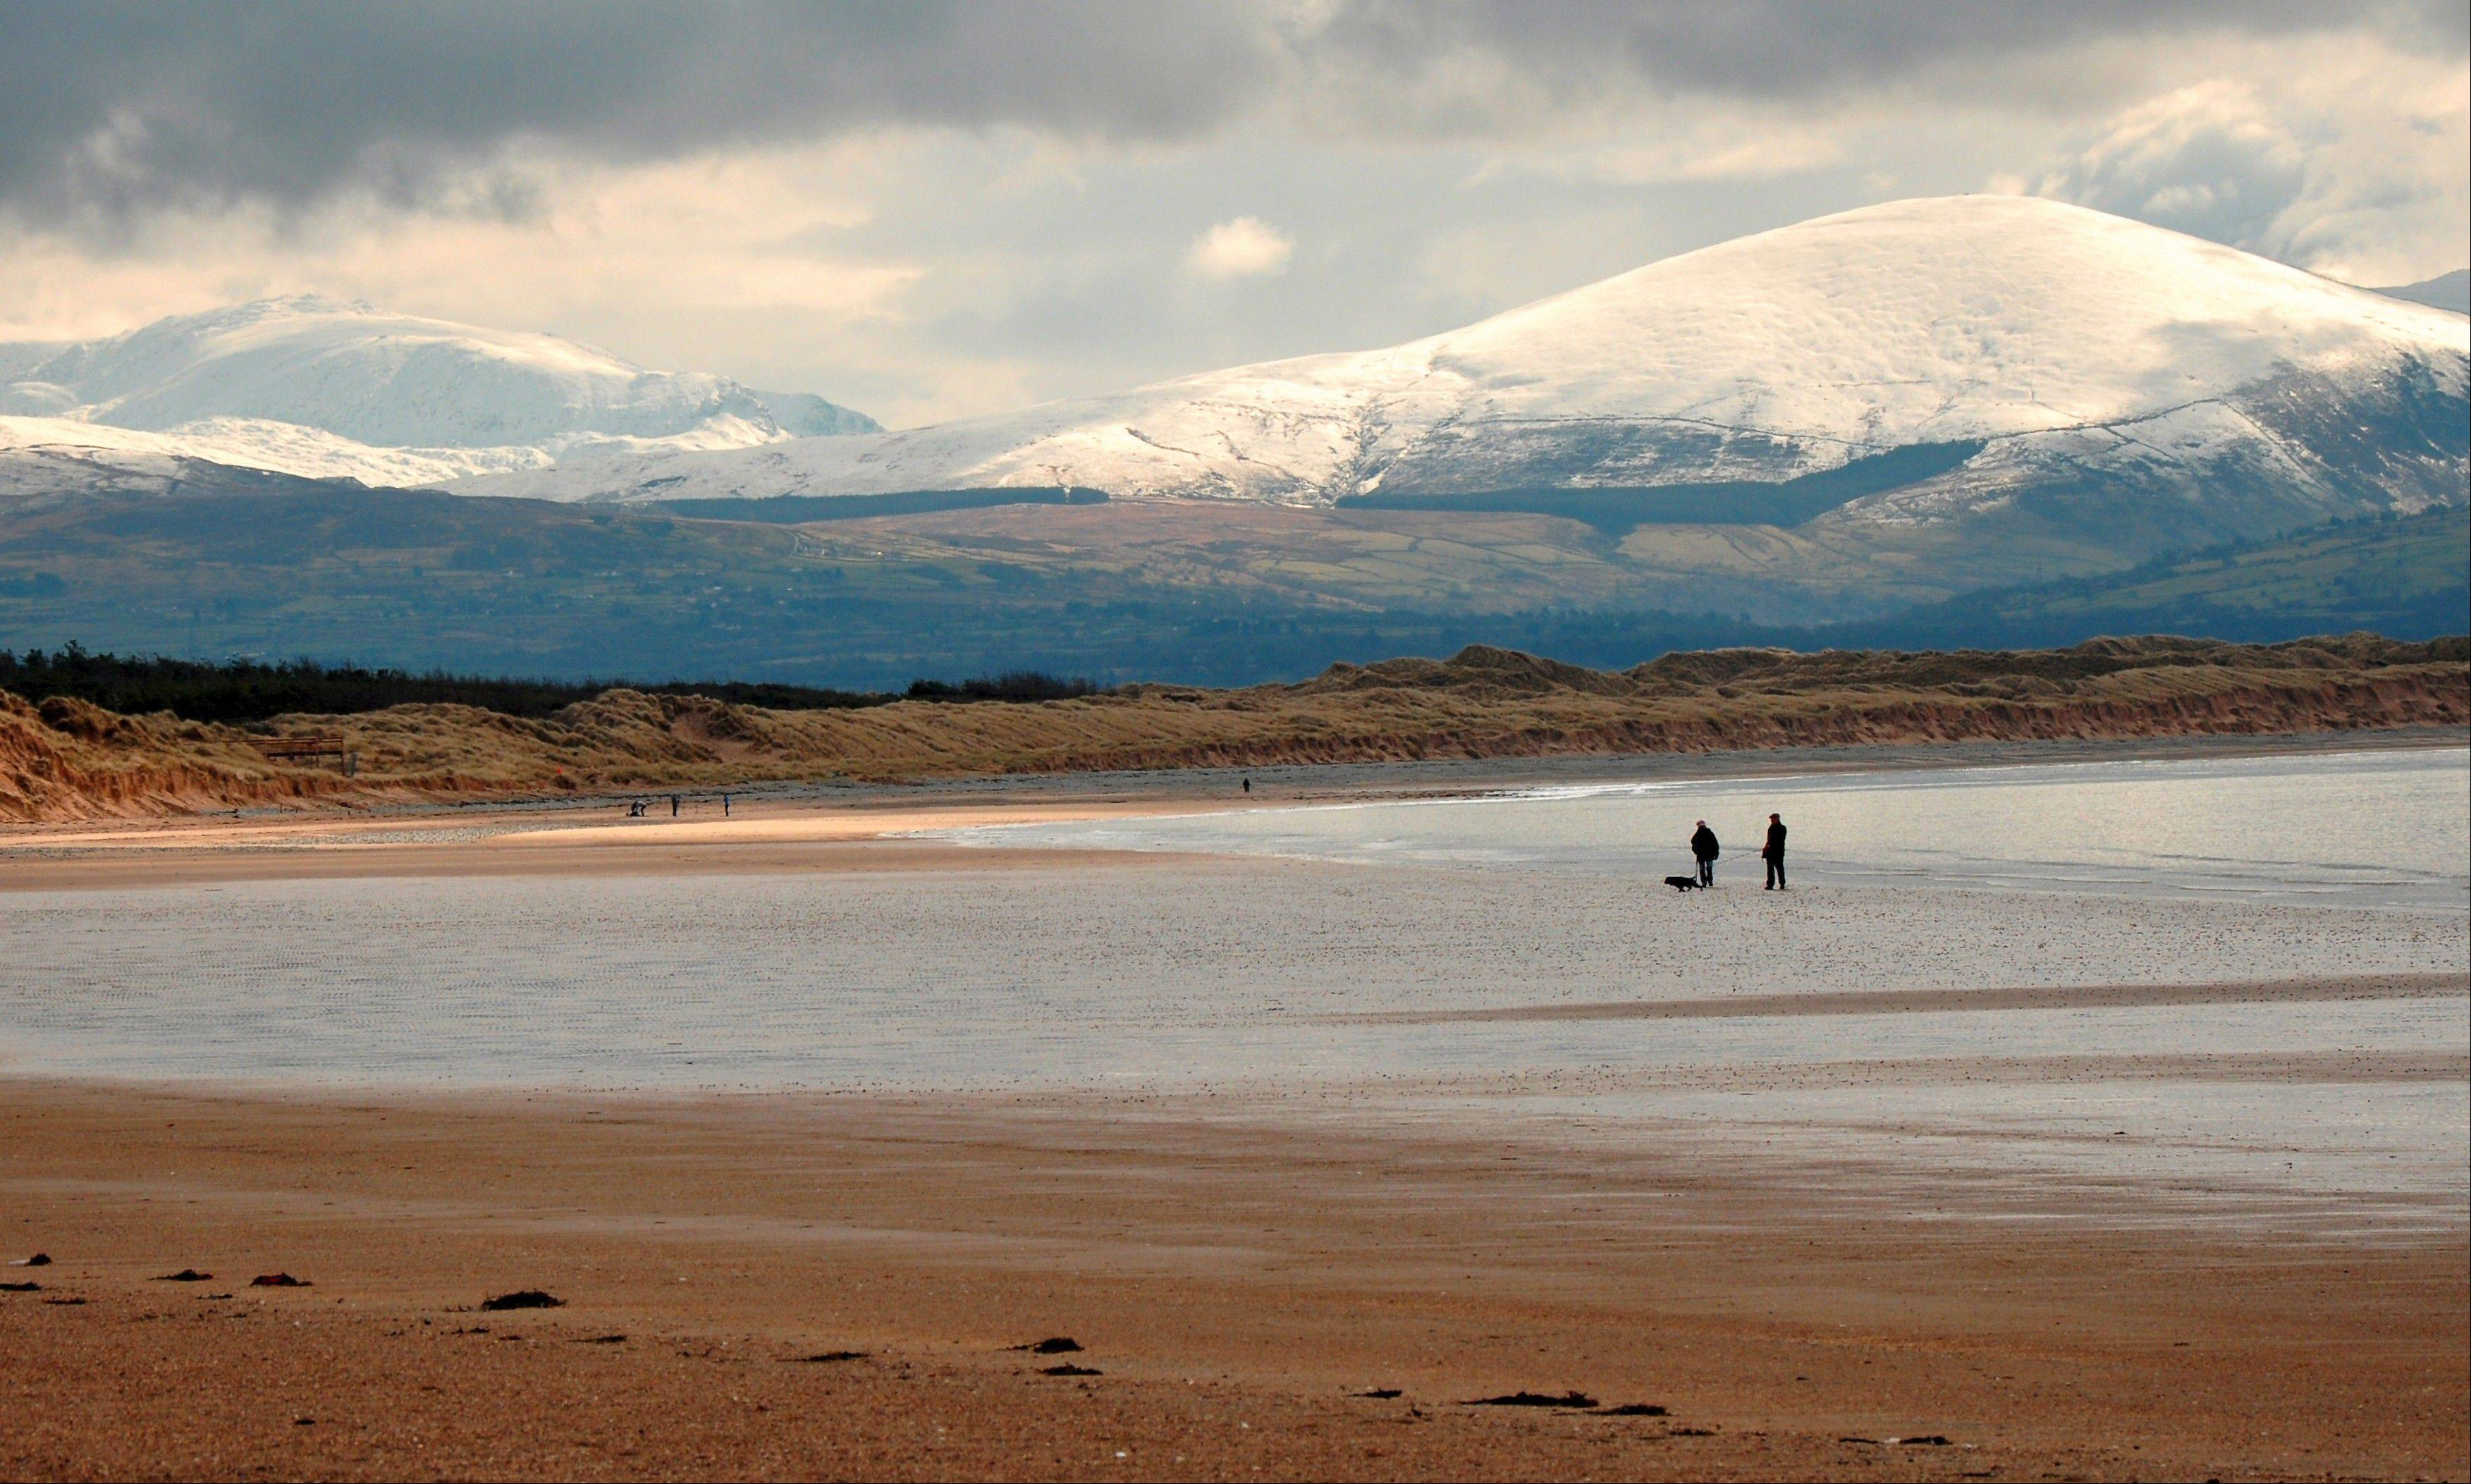 A broad, sandy beach stretches along the Irish Sea on the fringes of Newborough Forest in Wales. The mountains of Snowdonia National Park rise in the distance, often capped with snow until June.